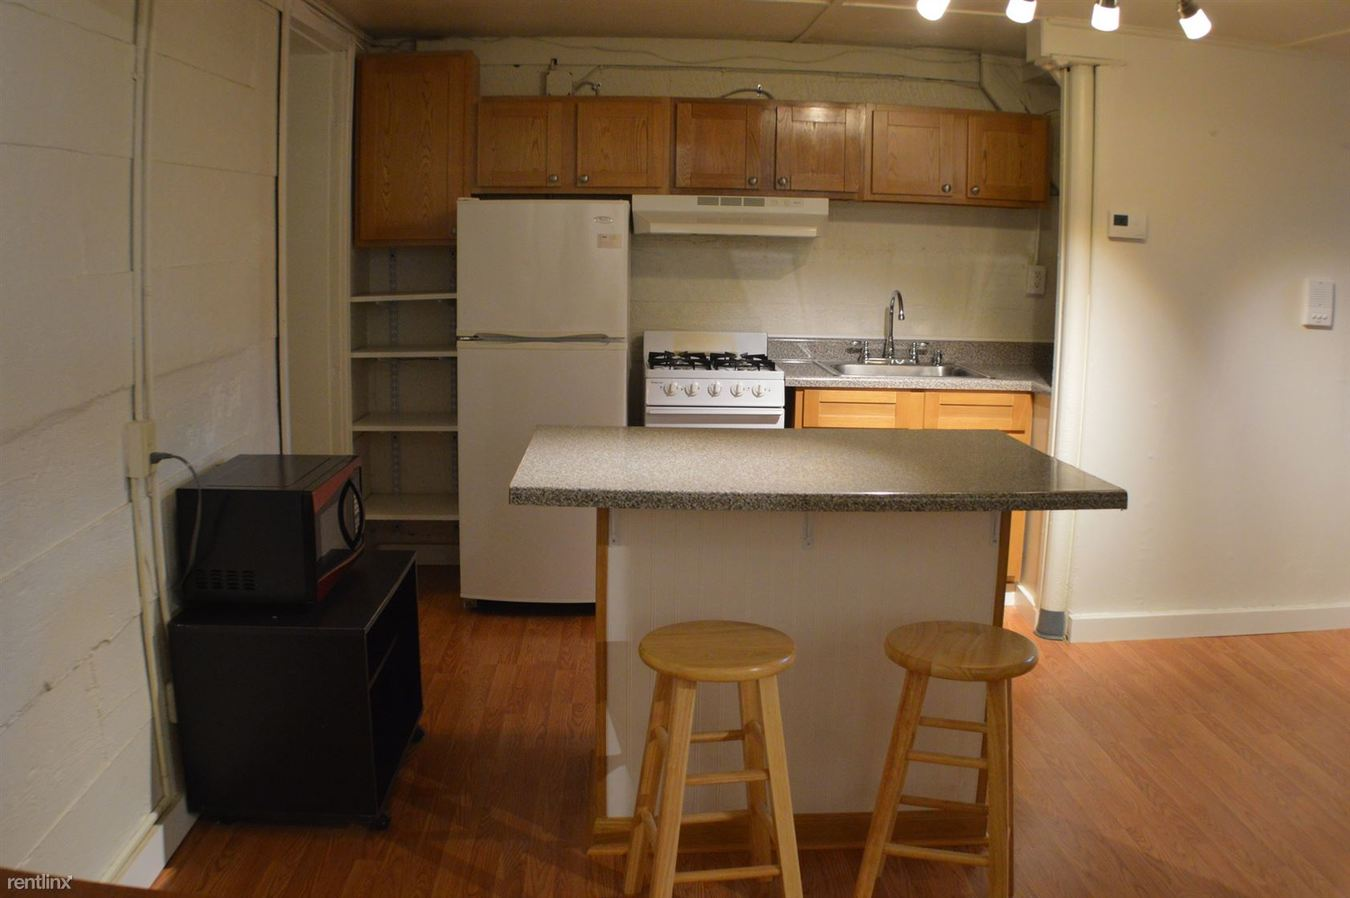 2 Bedrooms 1 Bathroom Apartment for rent at 710 Stewart Avenue in Ithaca, NY